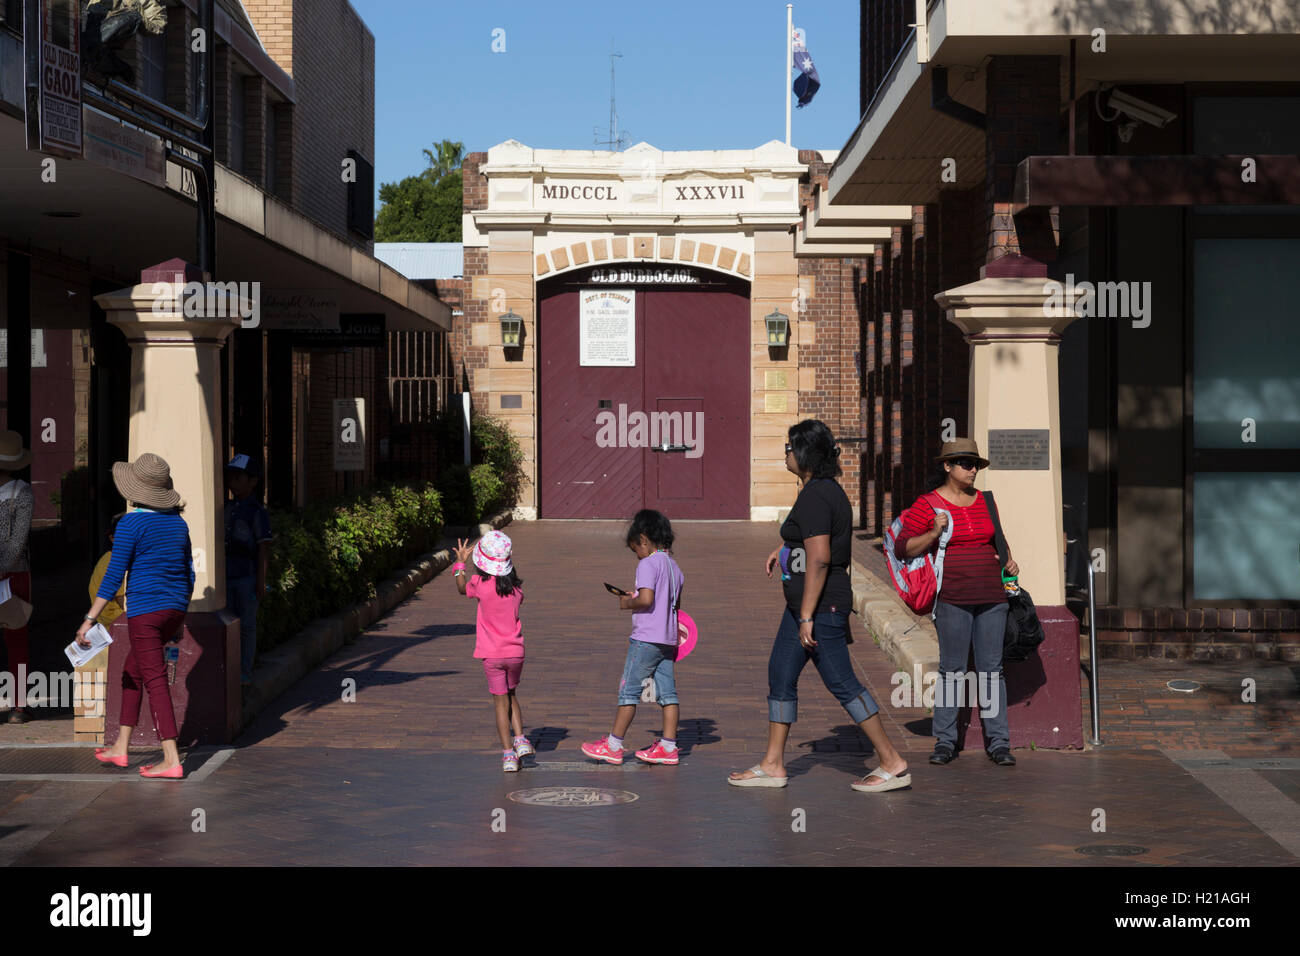 Old Dubbo Goal was a prison in the city of Dubbo, New South Wales, Australia. Dubbo New South Wales Australia Stock Photo